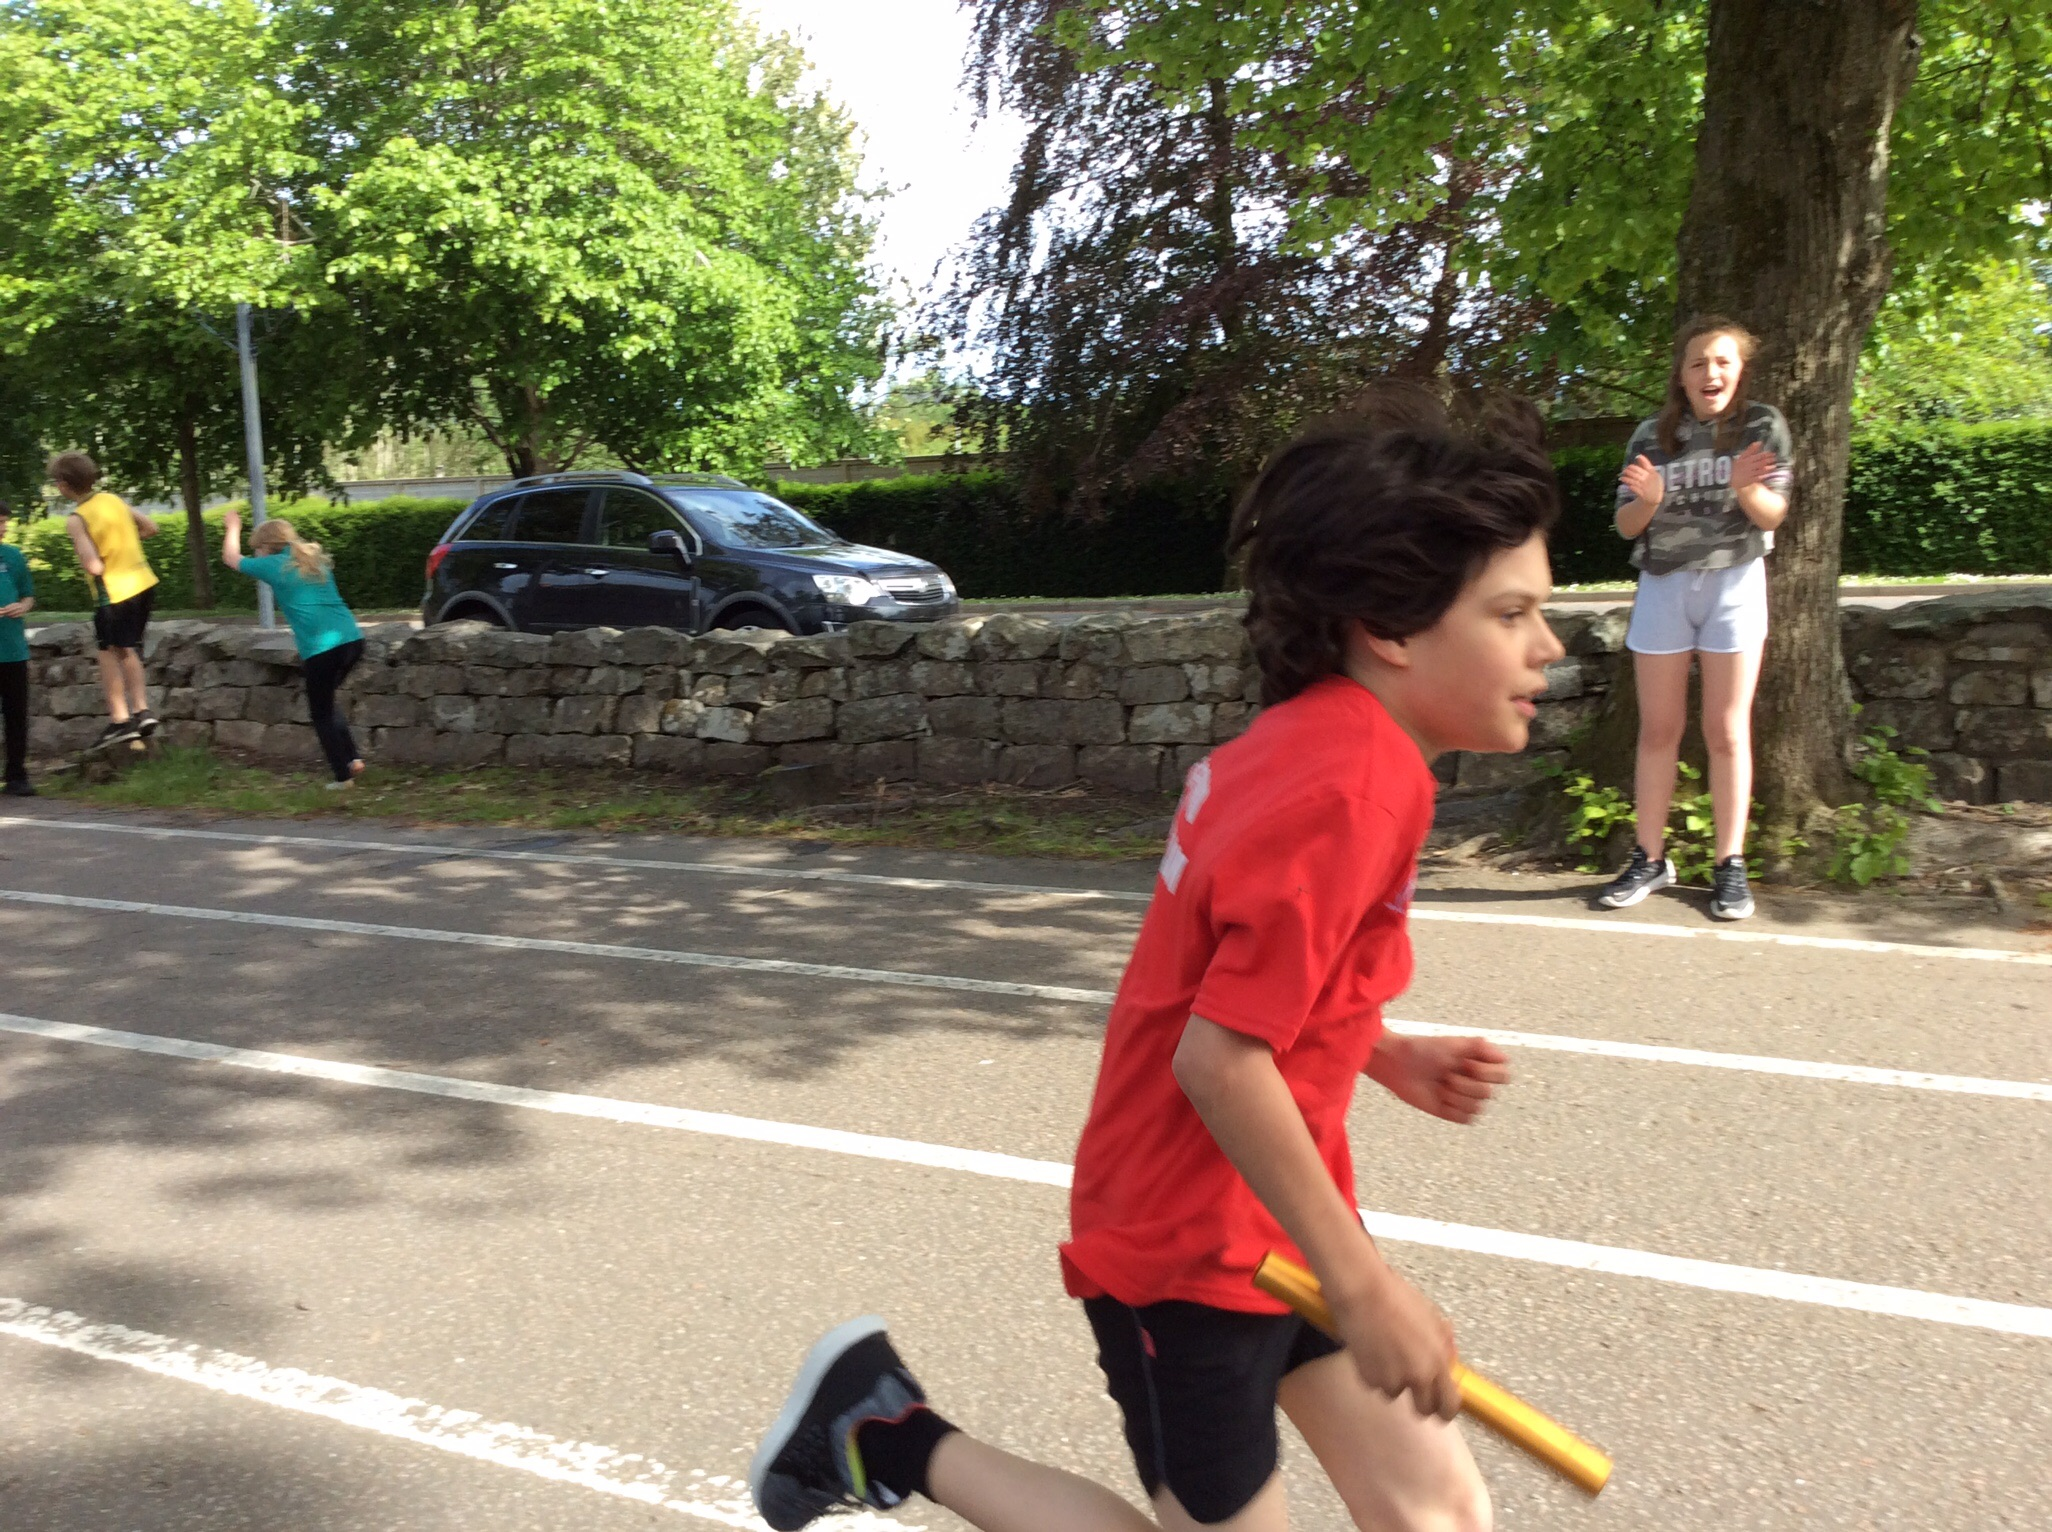 P5 Boy finishing their part of the relay